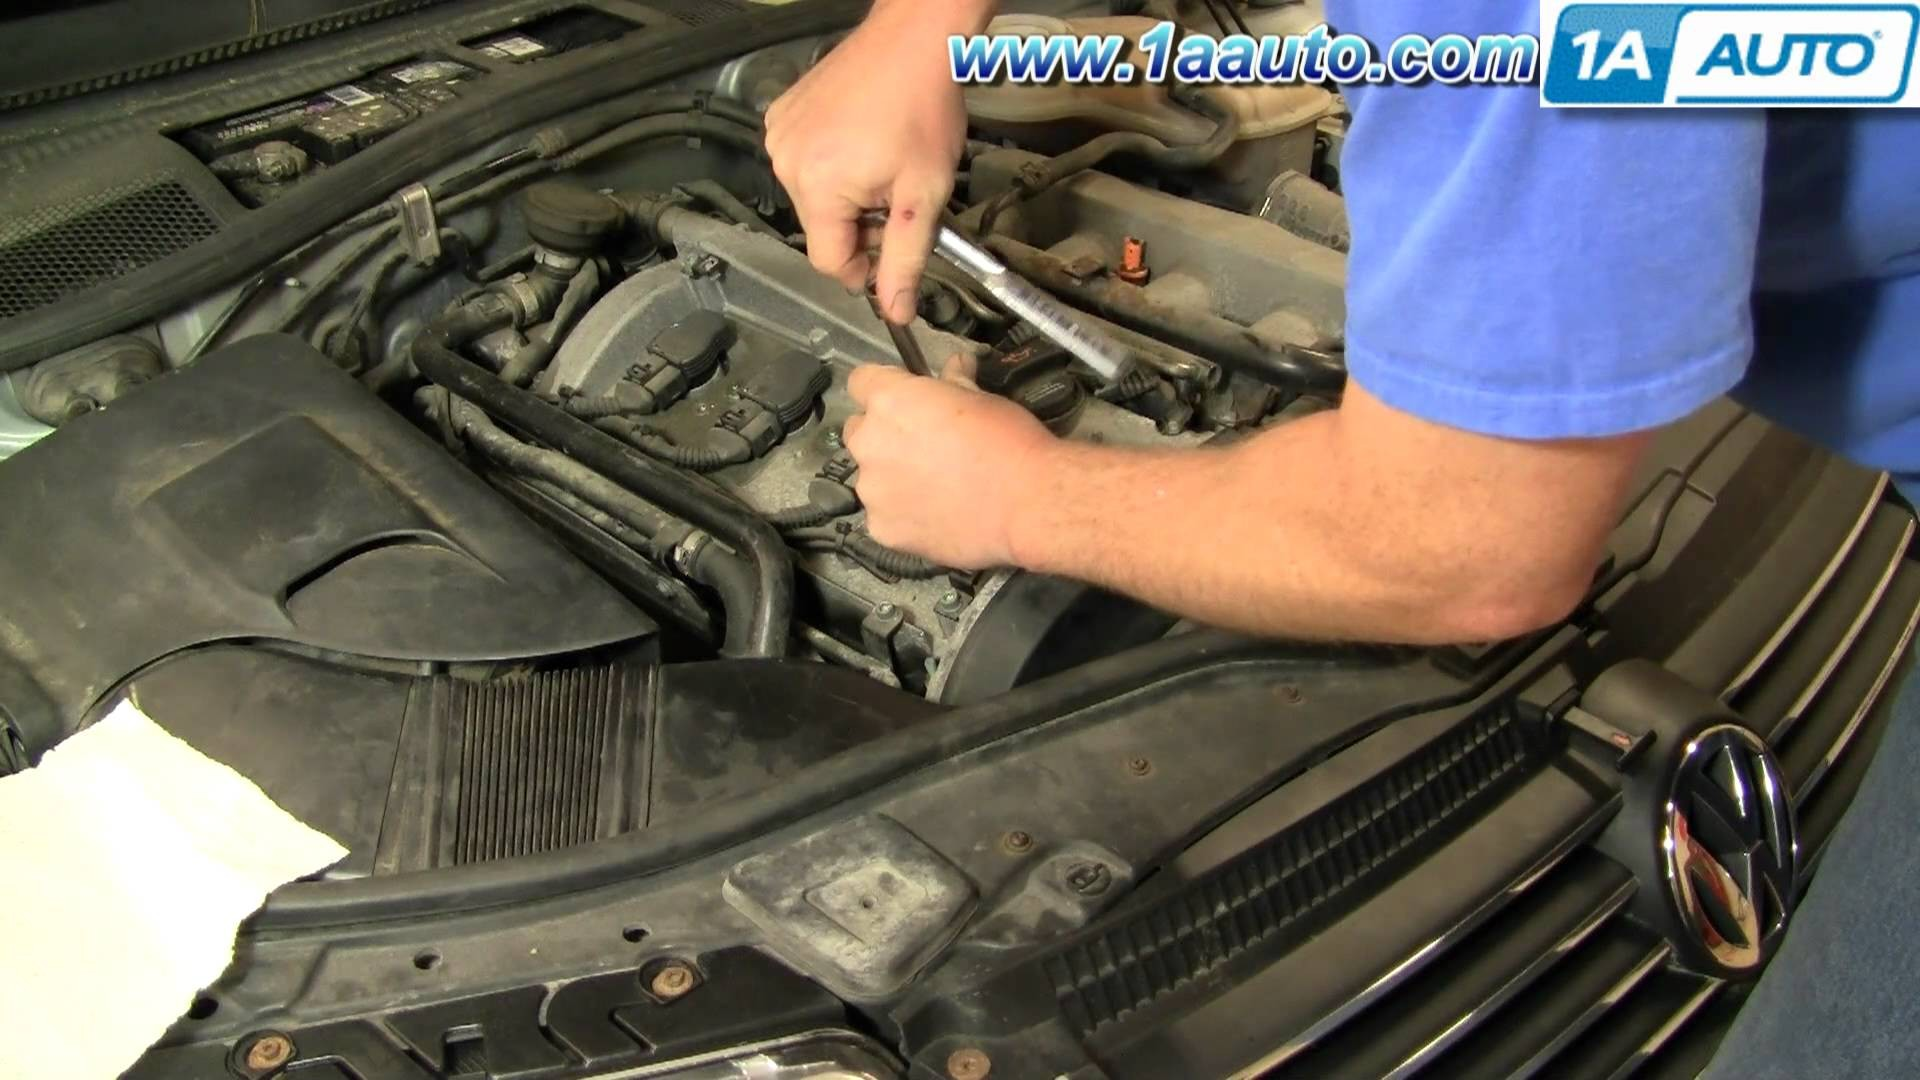 1999 vw passat engine diagram double pole socket wiring 1 8t best library how to install replace spark plugs volkswagen 1aauto